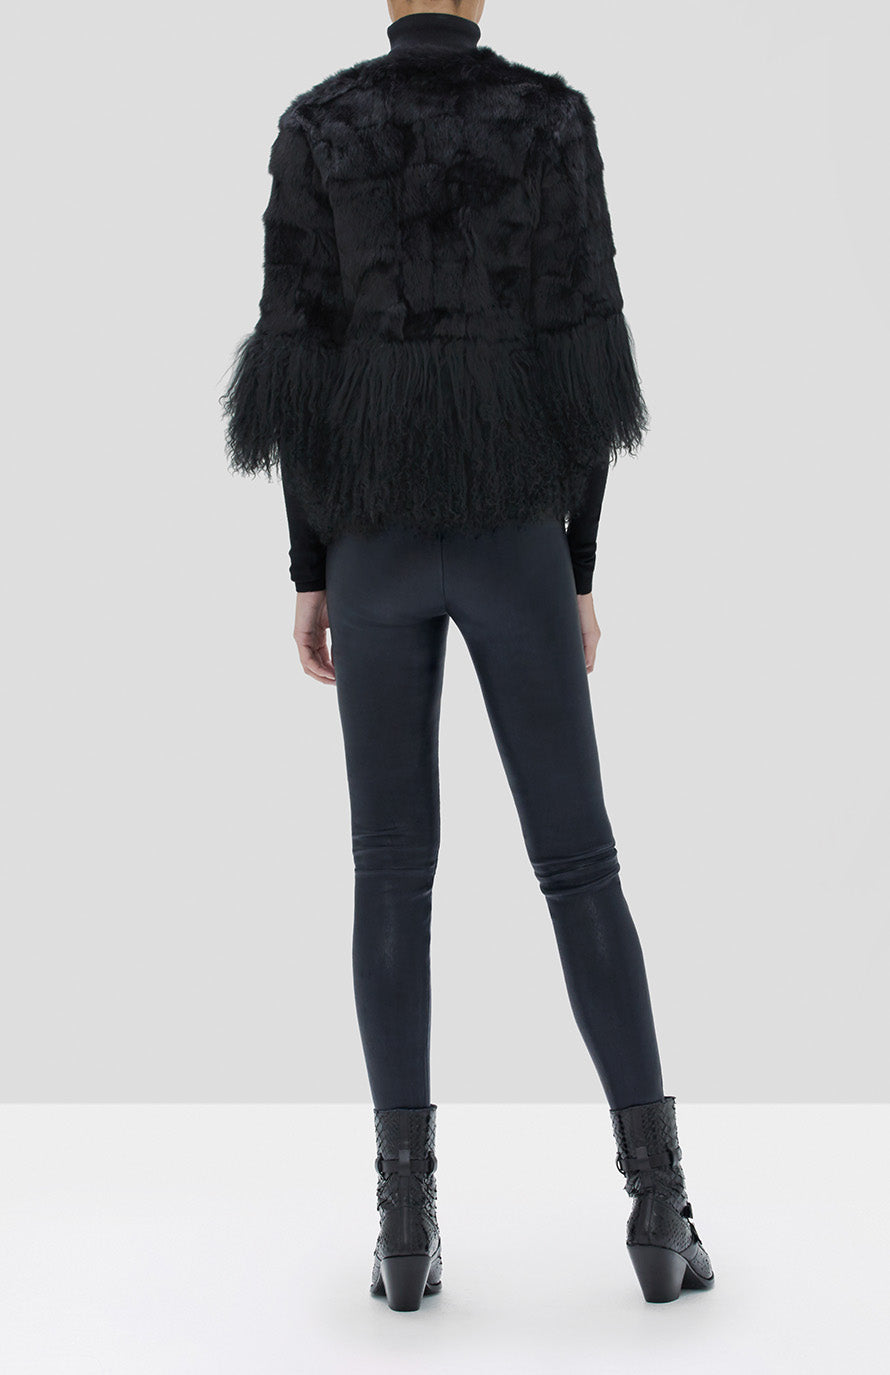 Alexis Sawyer Fur Jacket Black, Boyd Pants Black, Jaiko Top Black from Fall Winter 2019 Collection - Rear View